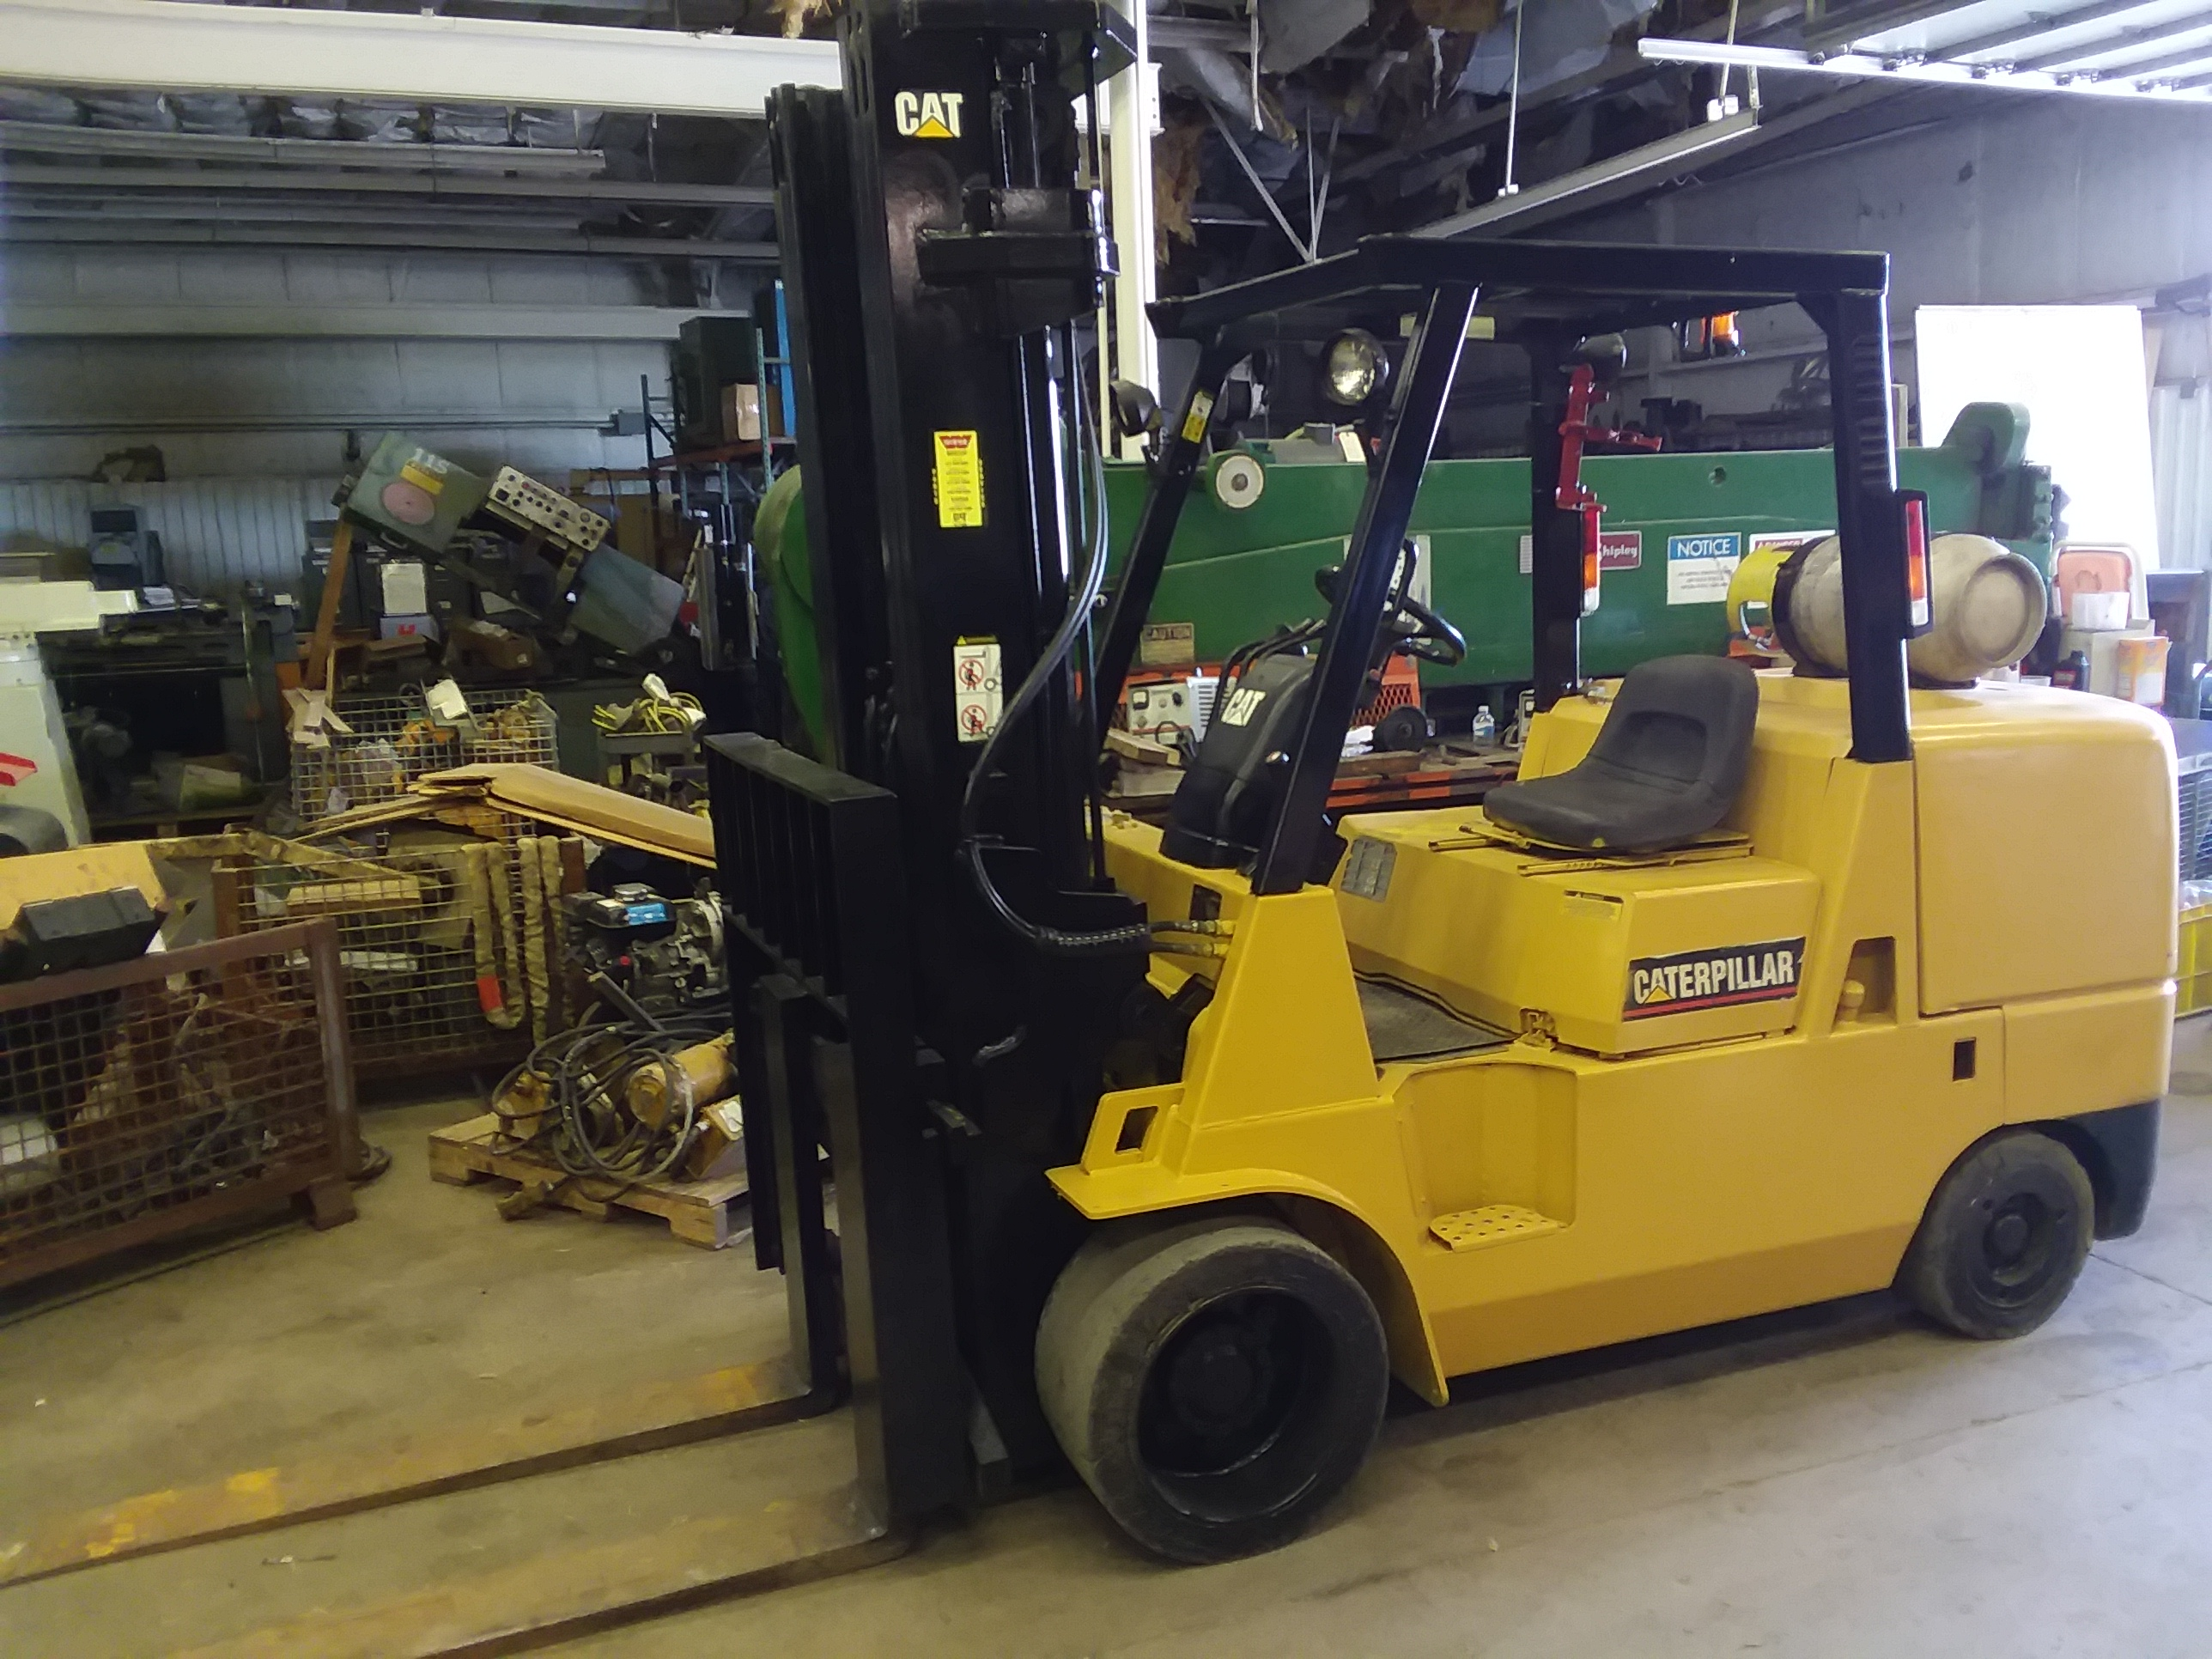 1 - PREOWNED CATERPILLAR 12000 LB LP FORKLIFT